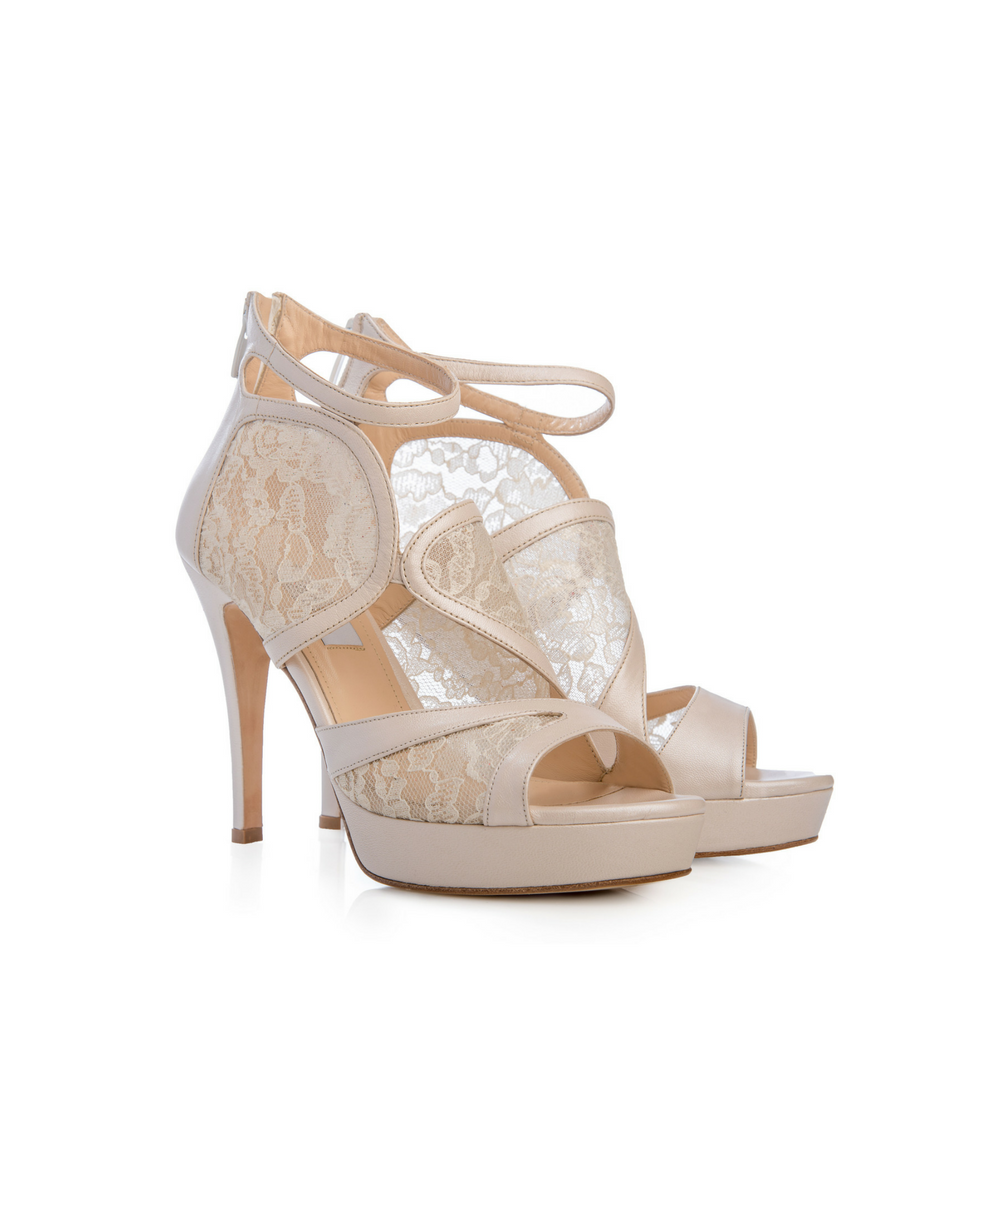 Bridal Ankle Zip Booties With Florale Tulle And Pearl Ivory Leather Mod.2564